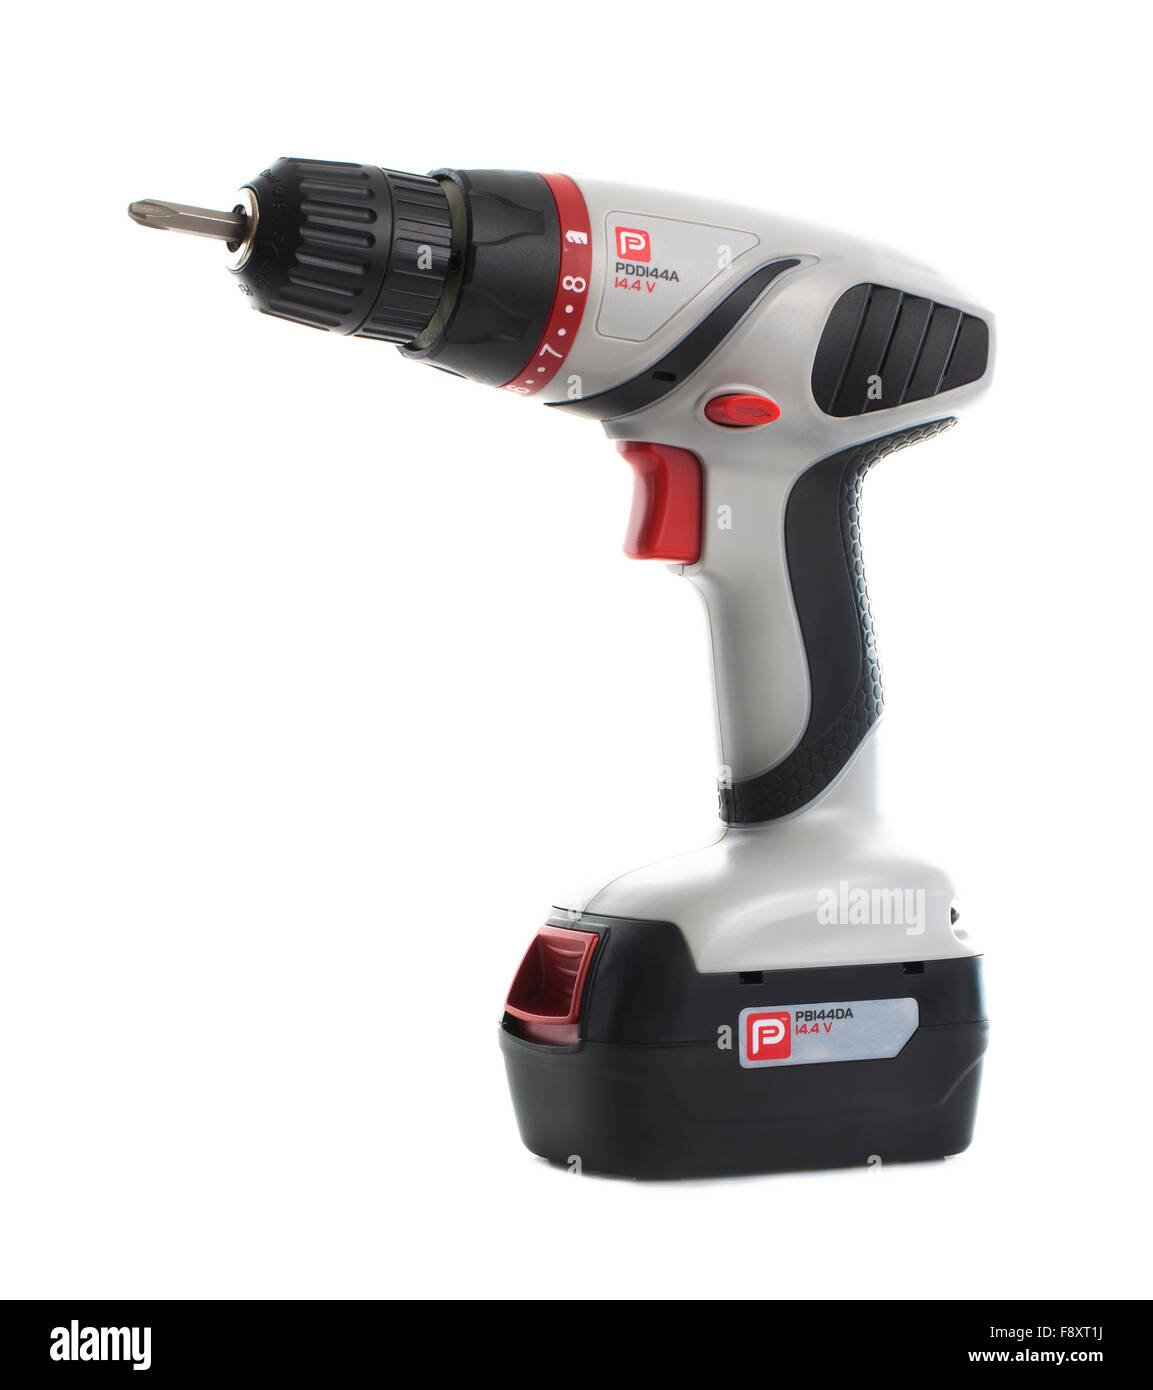 Performance Power Cordless Drill Driver on a white background - Stock Image